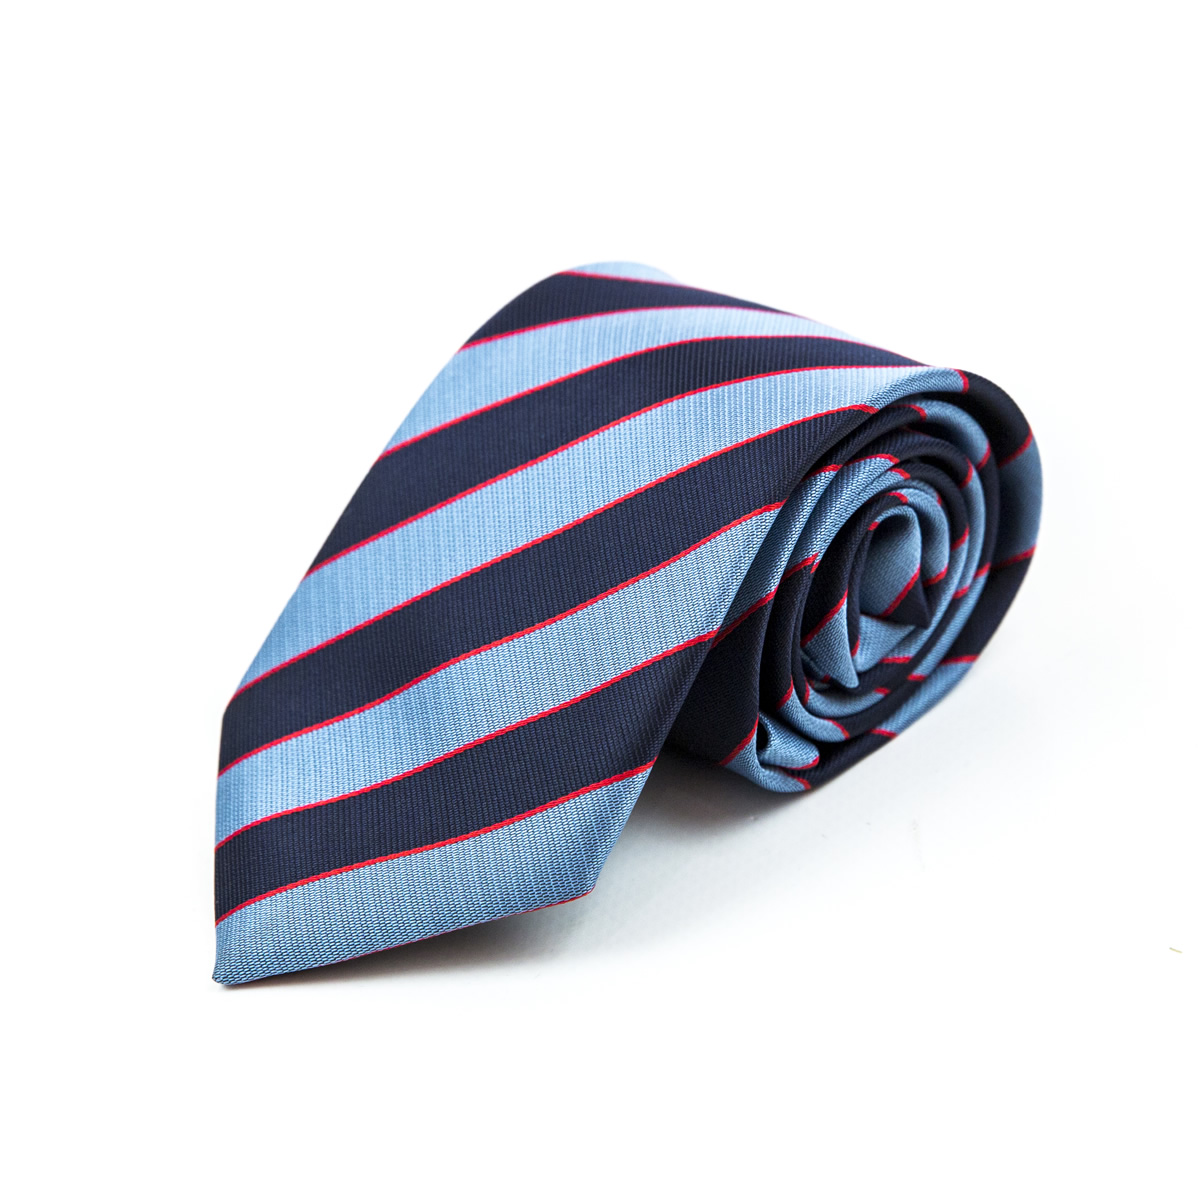 Blue and navy blue stripe tie rolled up